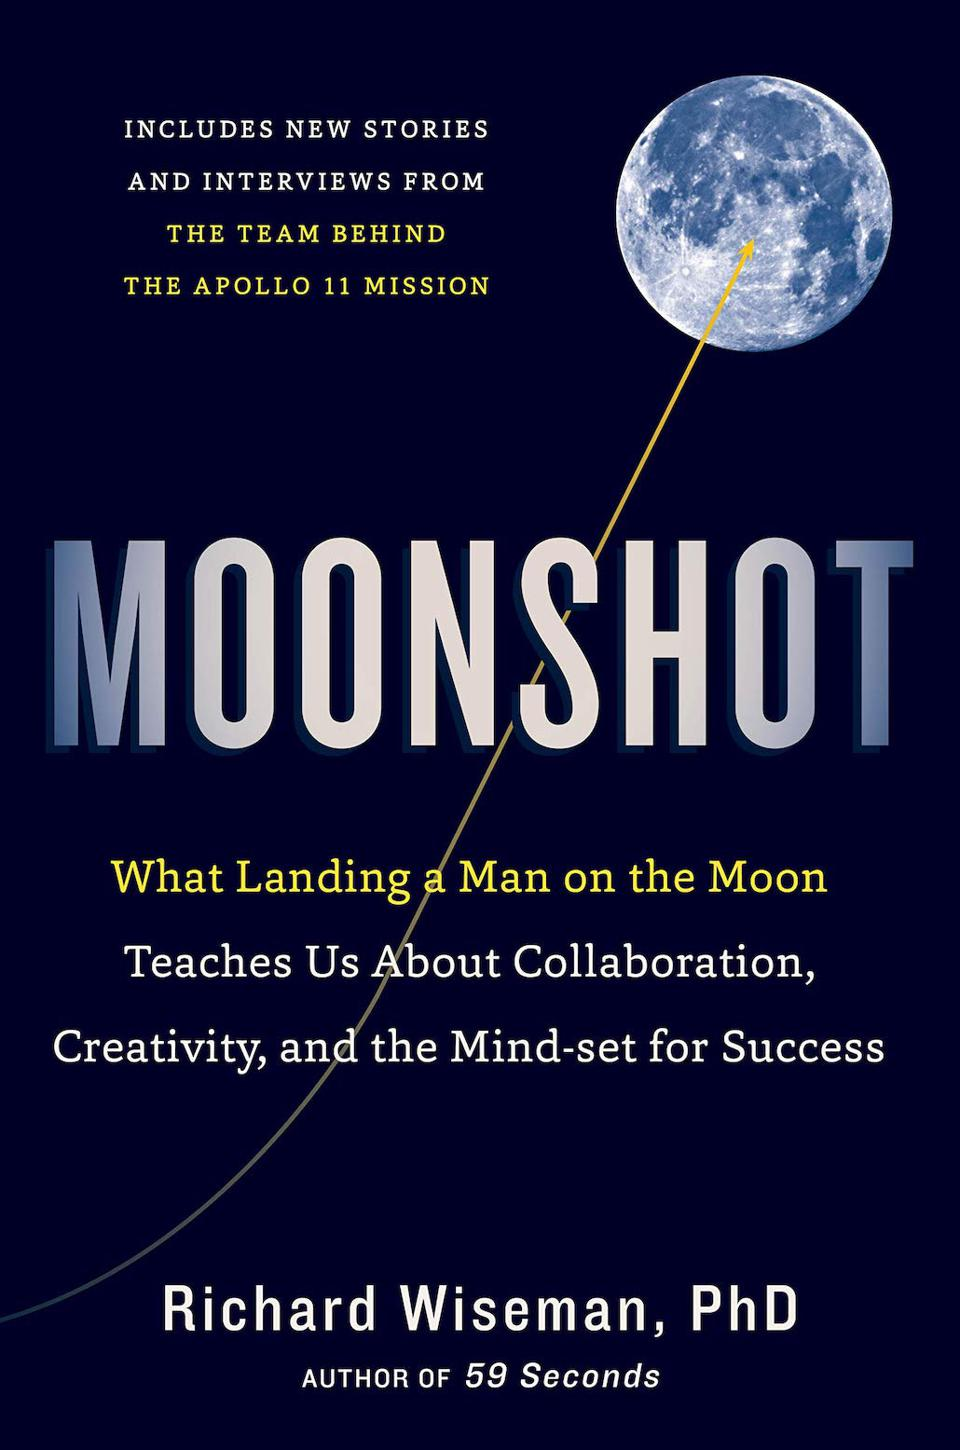 Moonshot: What Landing a Man on the Moon Teaches Us About Collaboration, Creativity, and the Mind-set for Success by Richard Wiseman